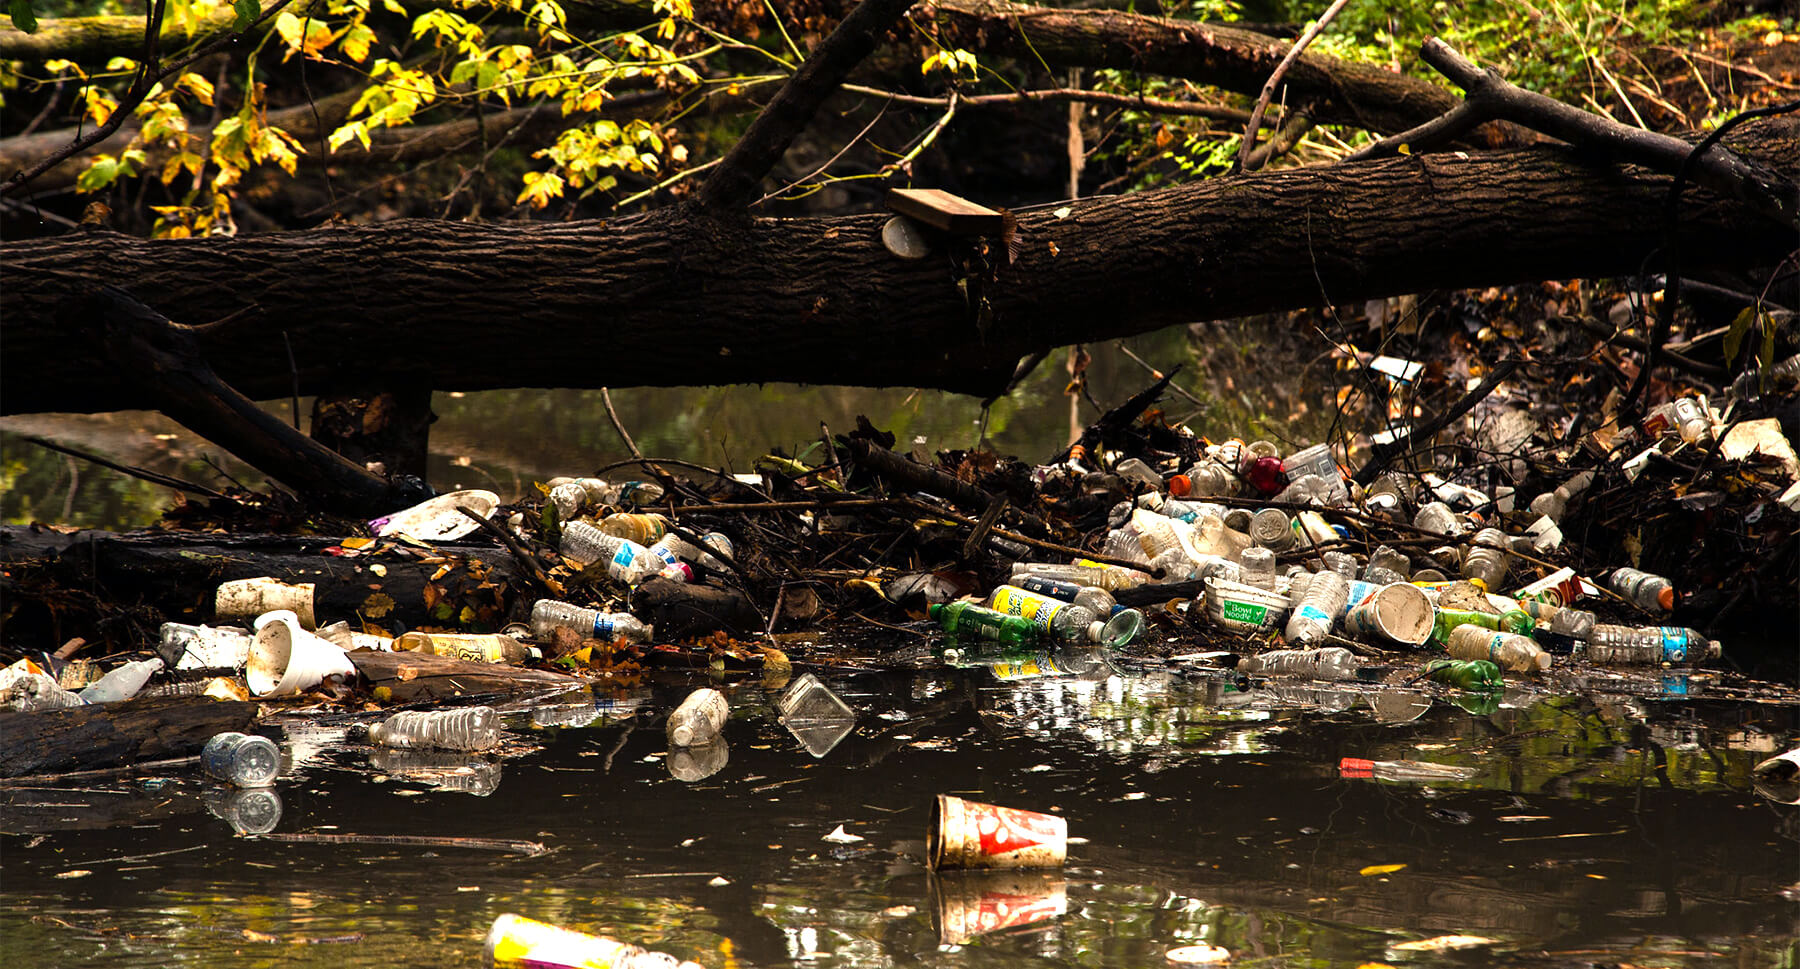 Litter piling up in a river